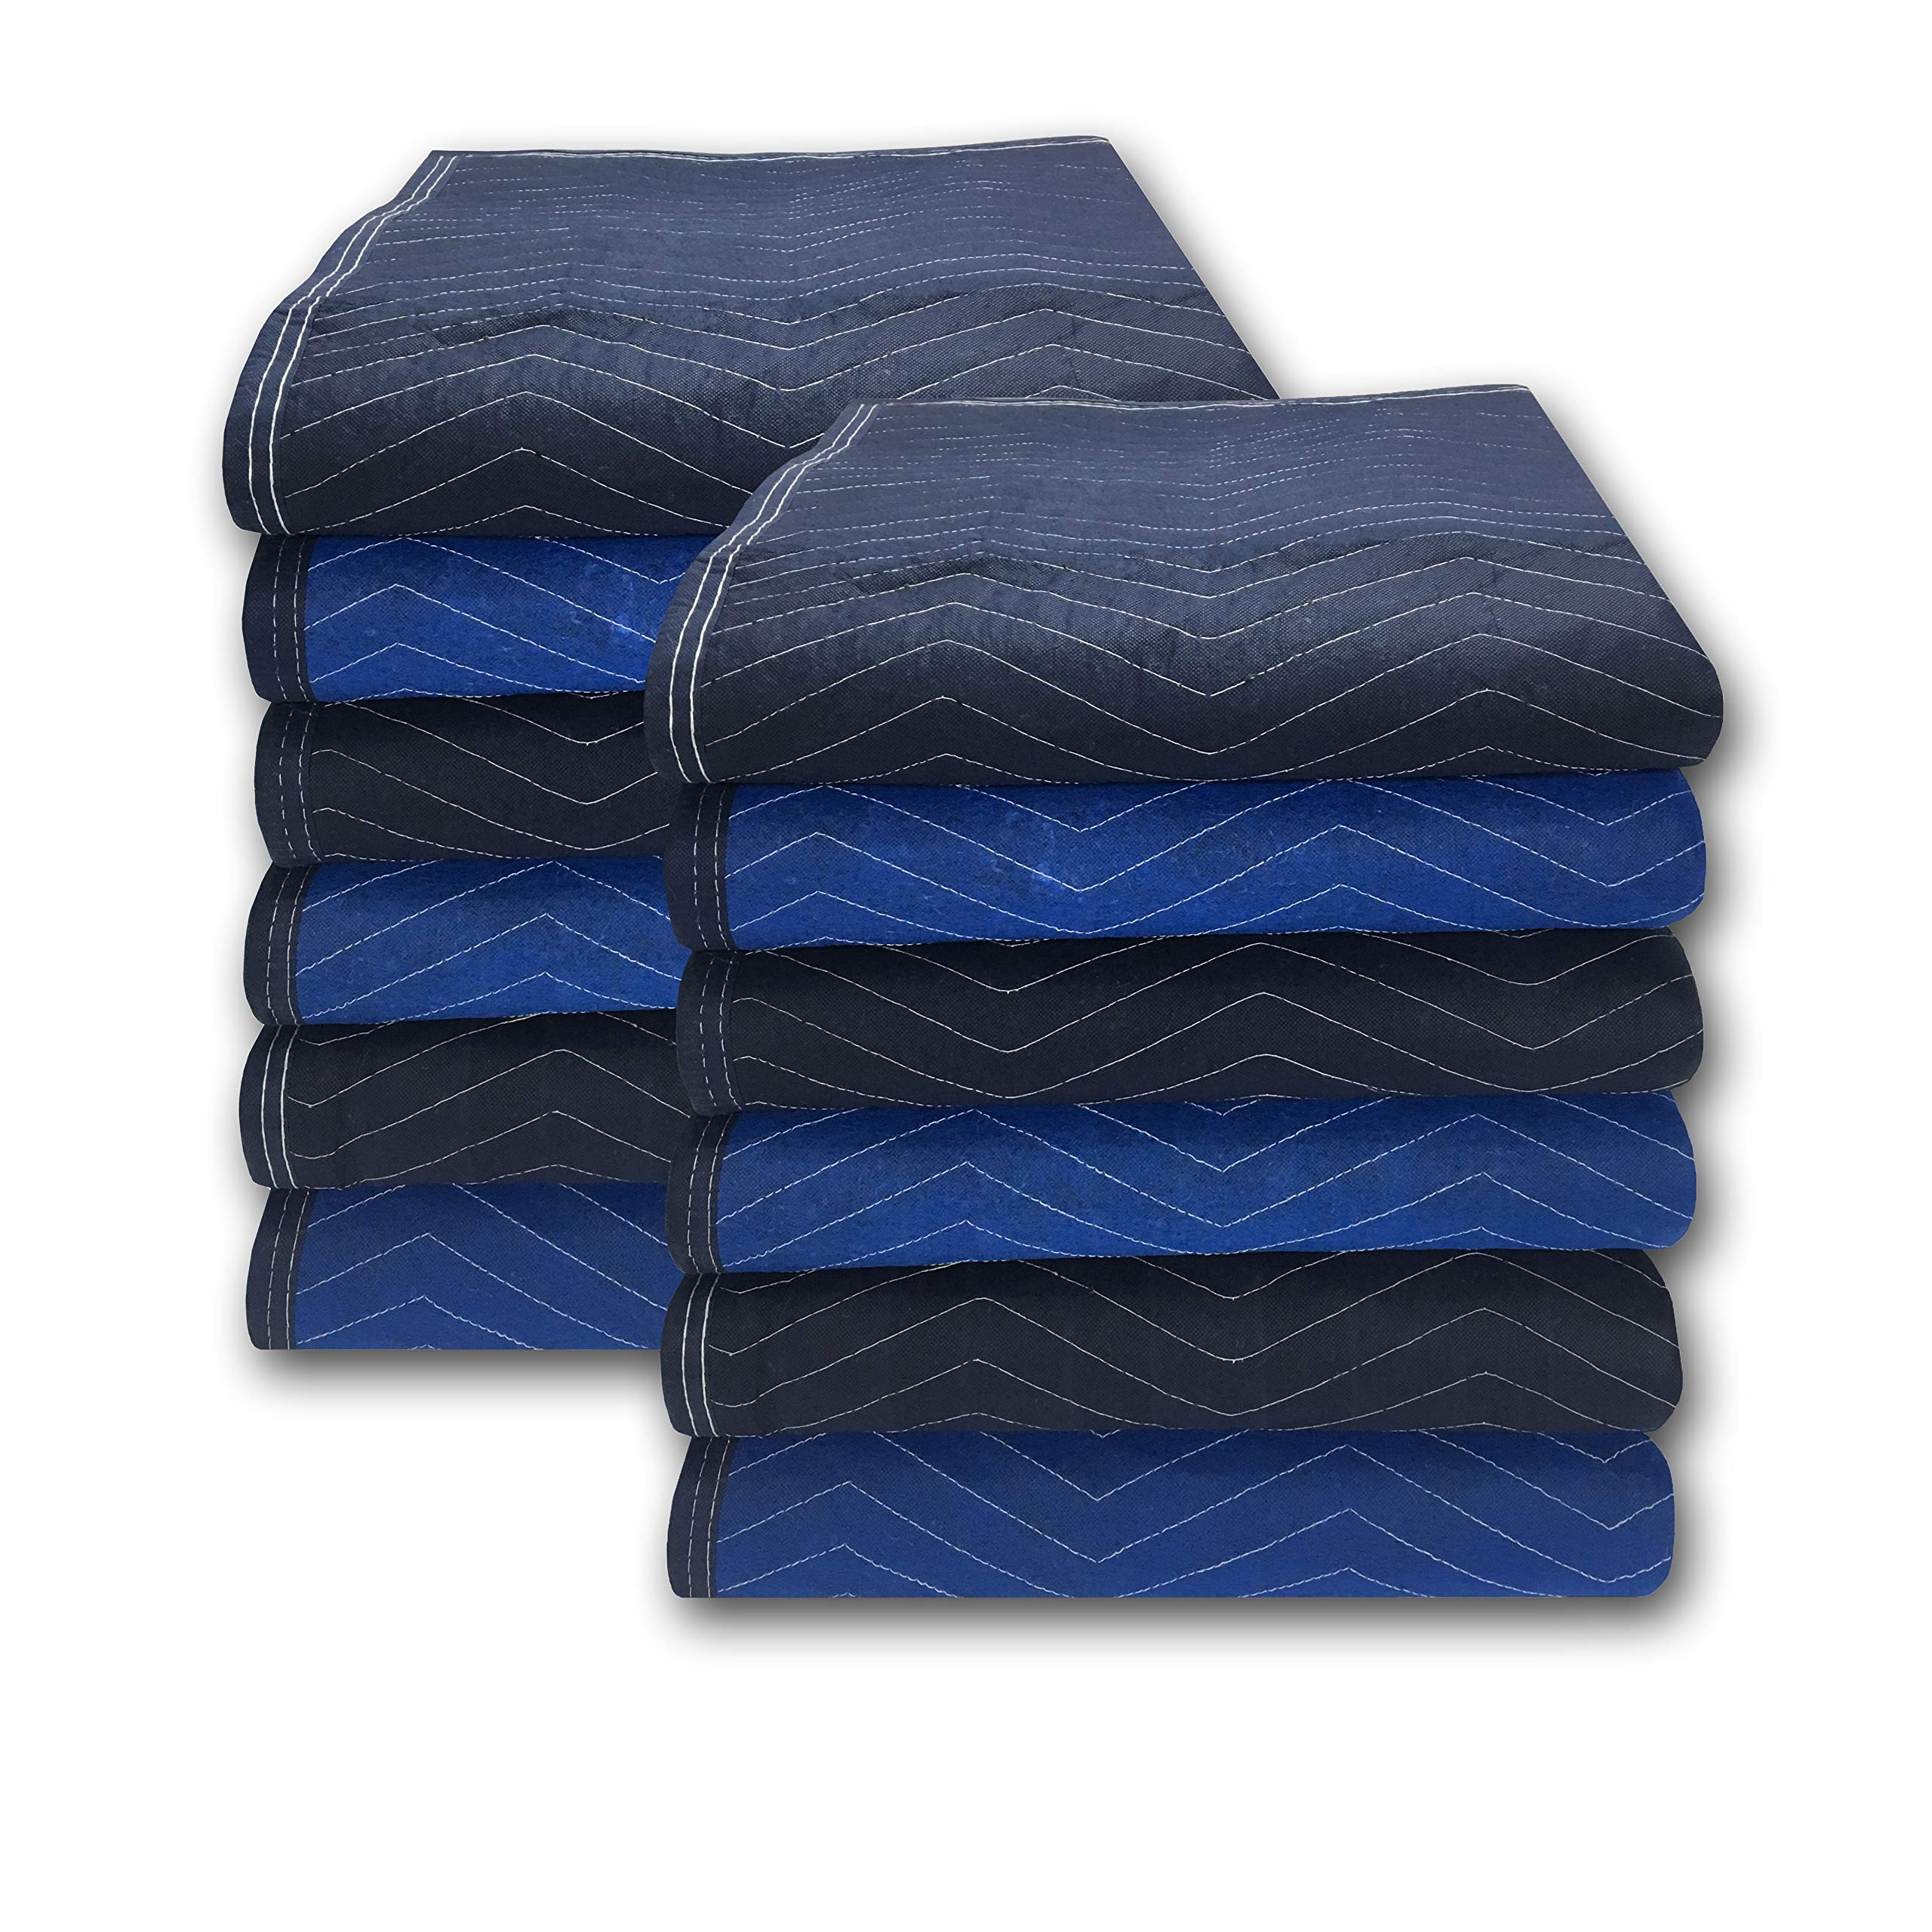 Uboxes Supreme Moving Blankets, 72 x 80 in, 6.67lbs each, 24 Pack